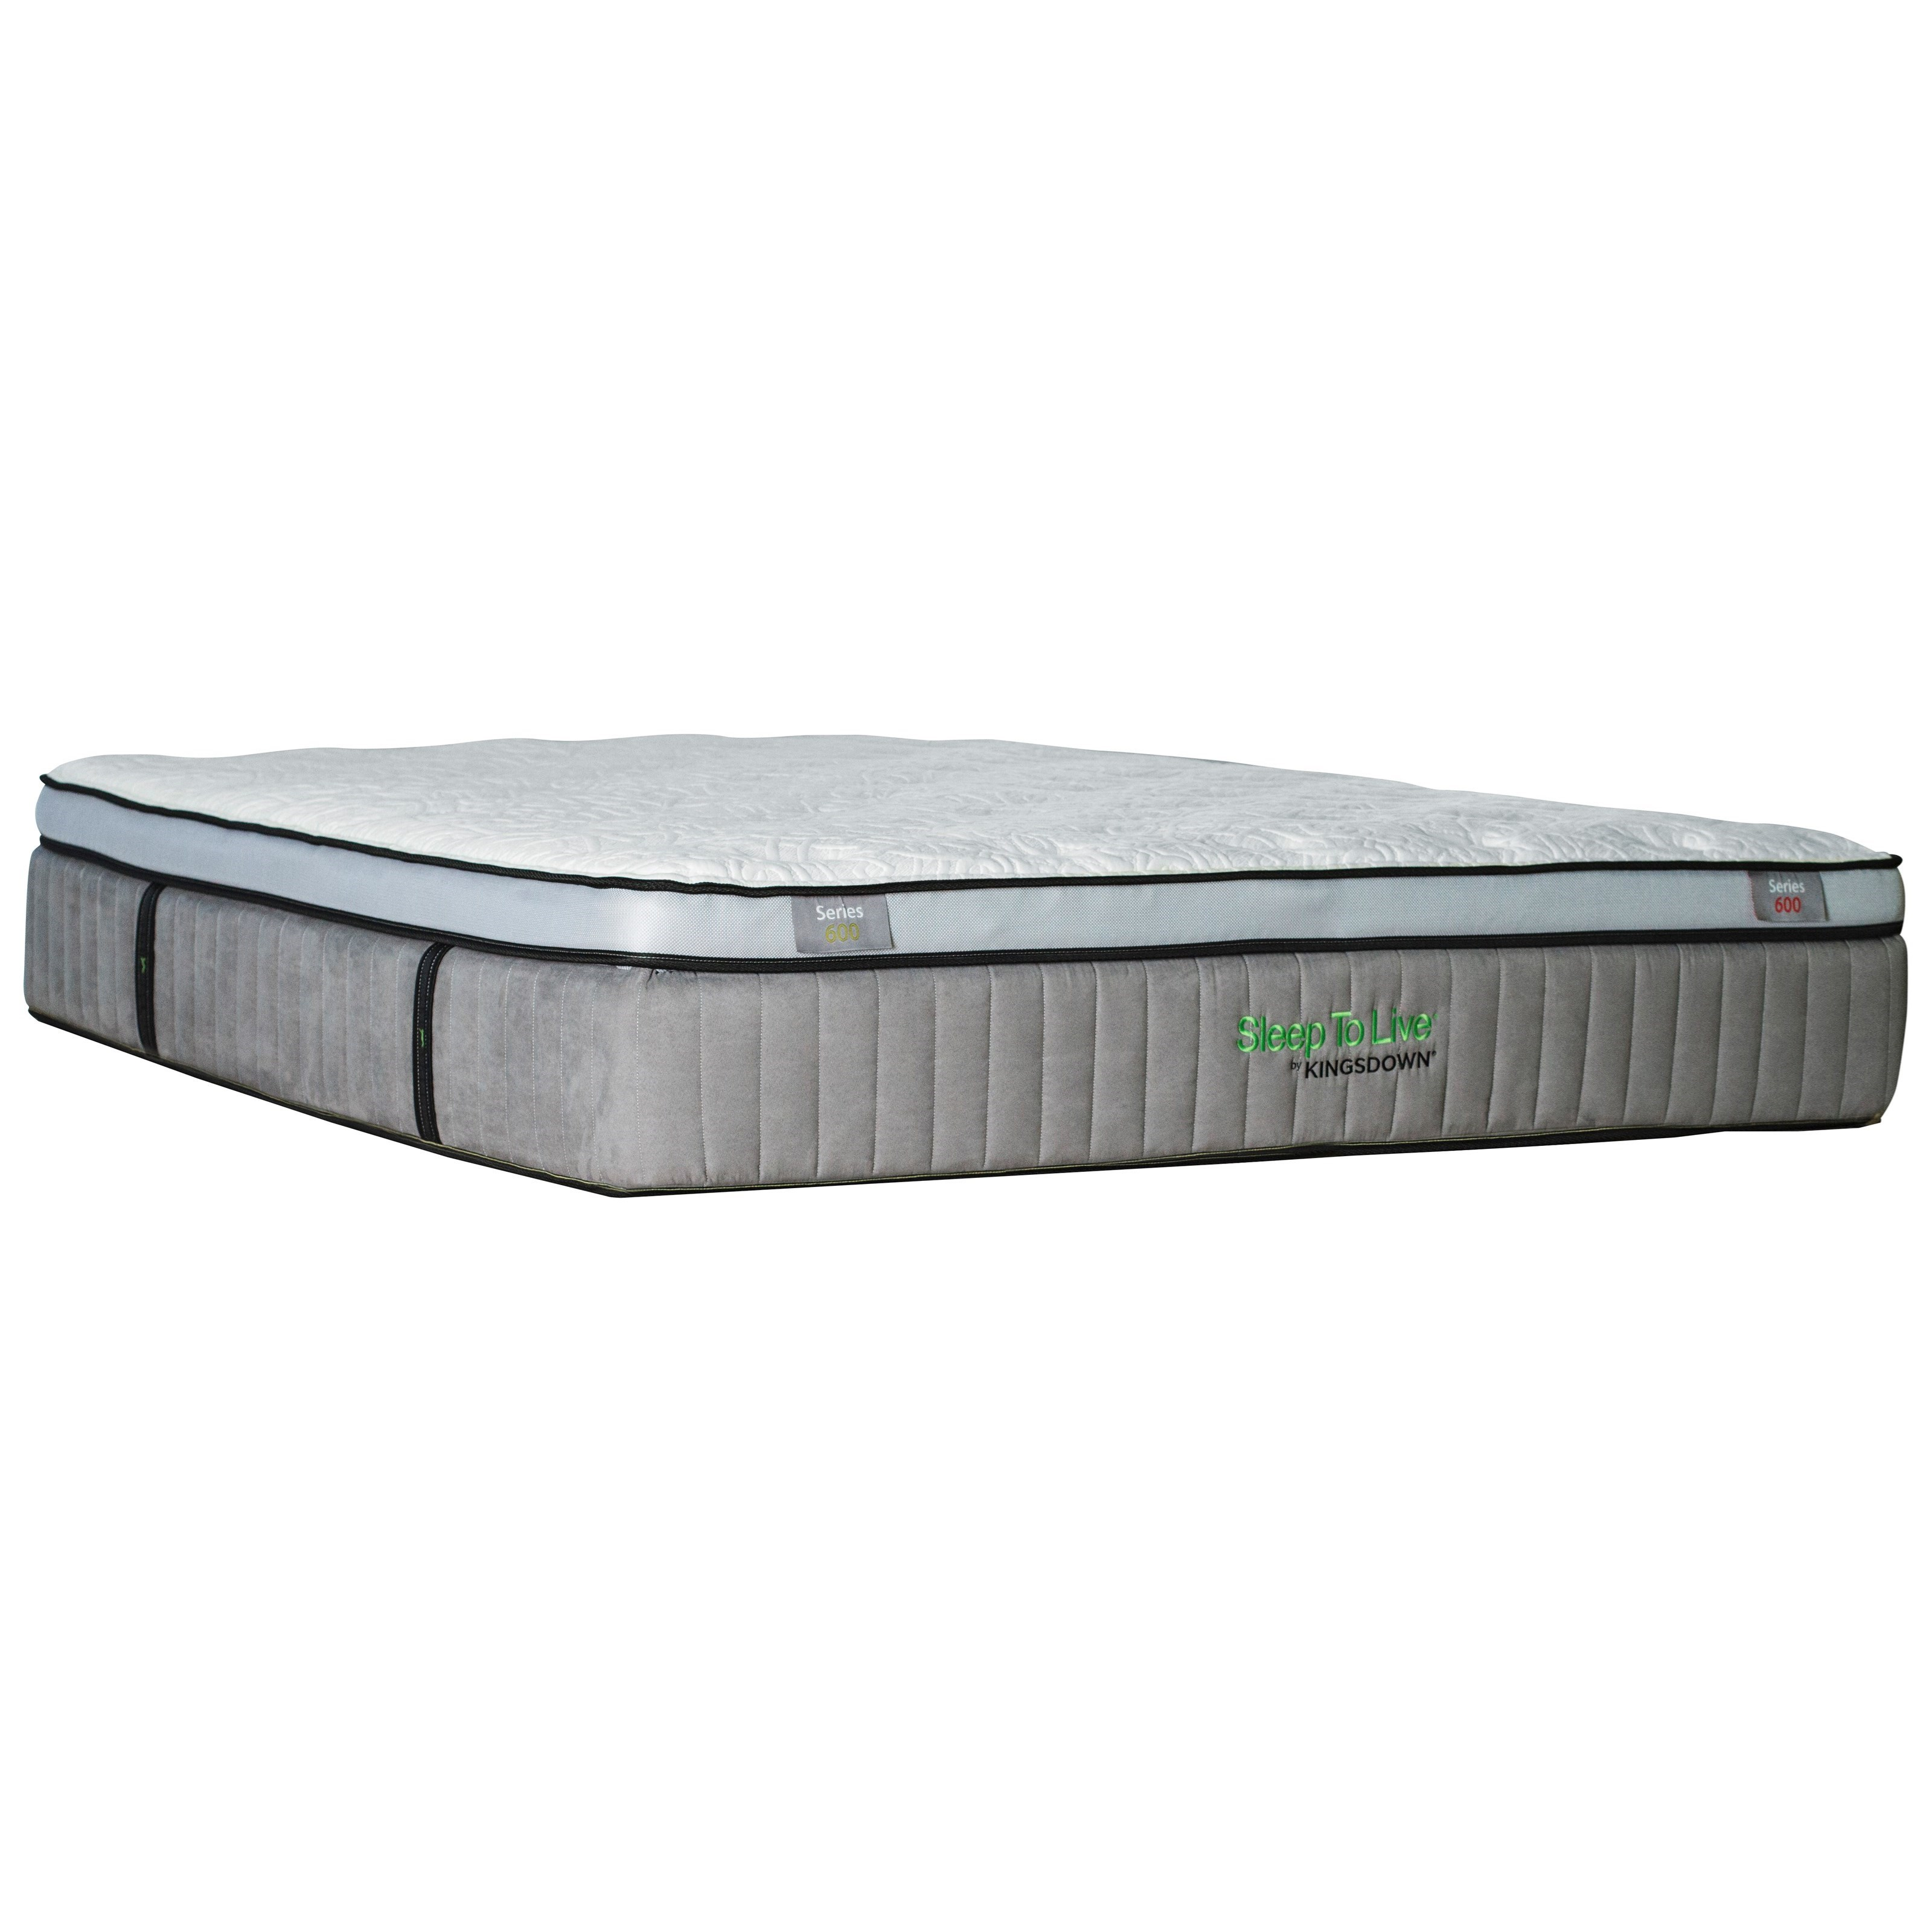 "Kingsdown 5244 Green Series 600 King 15 1/2"" Euro Top Luxury Mattress - Item Number: 5244-K"